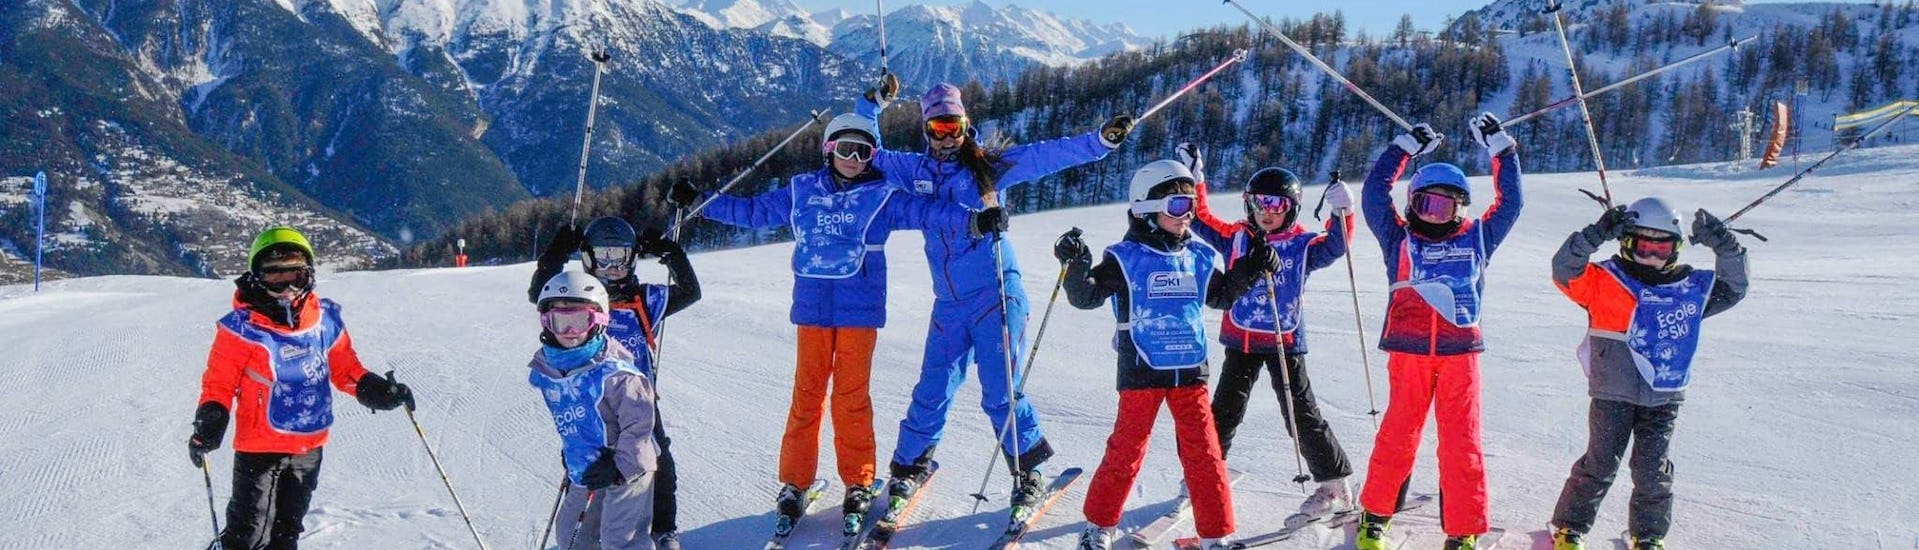 Ski Lessons for Kids (5-12 y.) - Incl. Equipment - Advanced